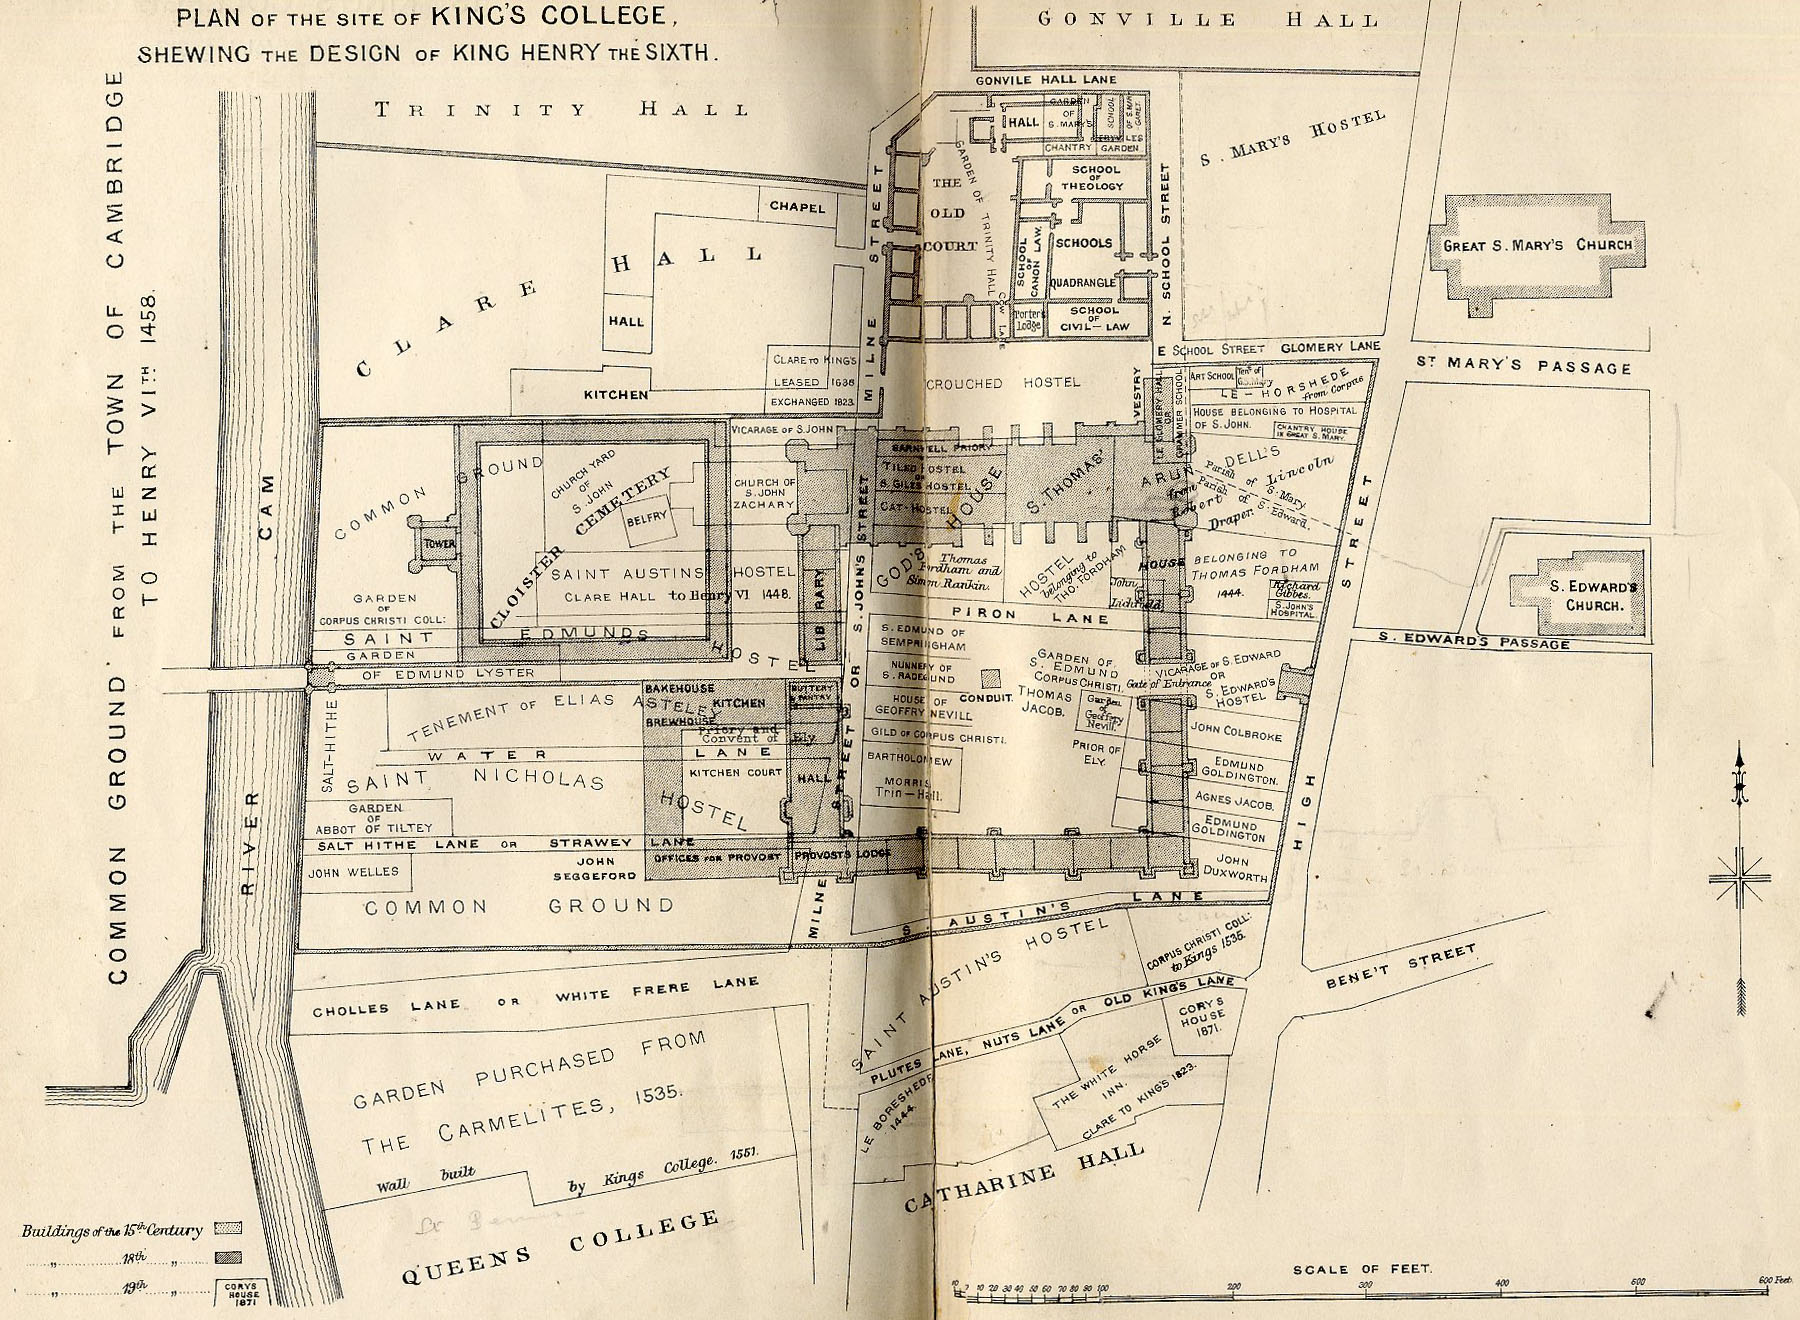 Plan of the site of King's College, showing the design of King Henry VI (Willis and Clark, figure 3a).